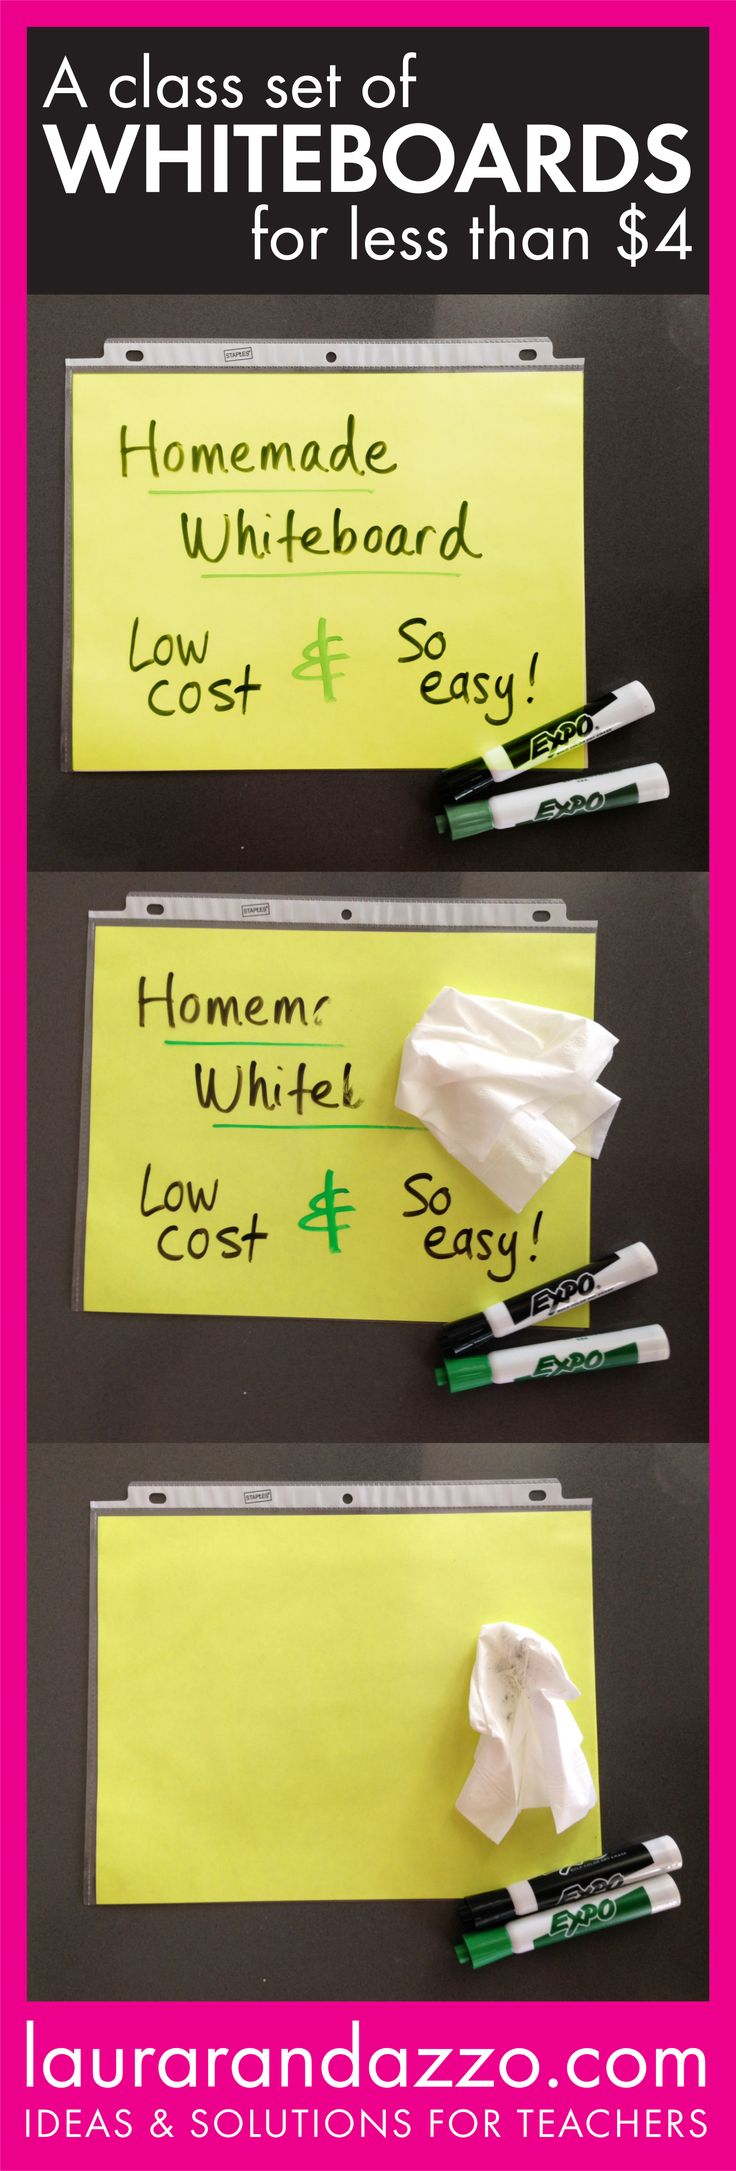 Cheap Spanish Classroom Decorations ~ Best ideas about diy whiteboard on pinterest dry